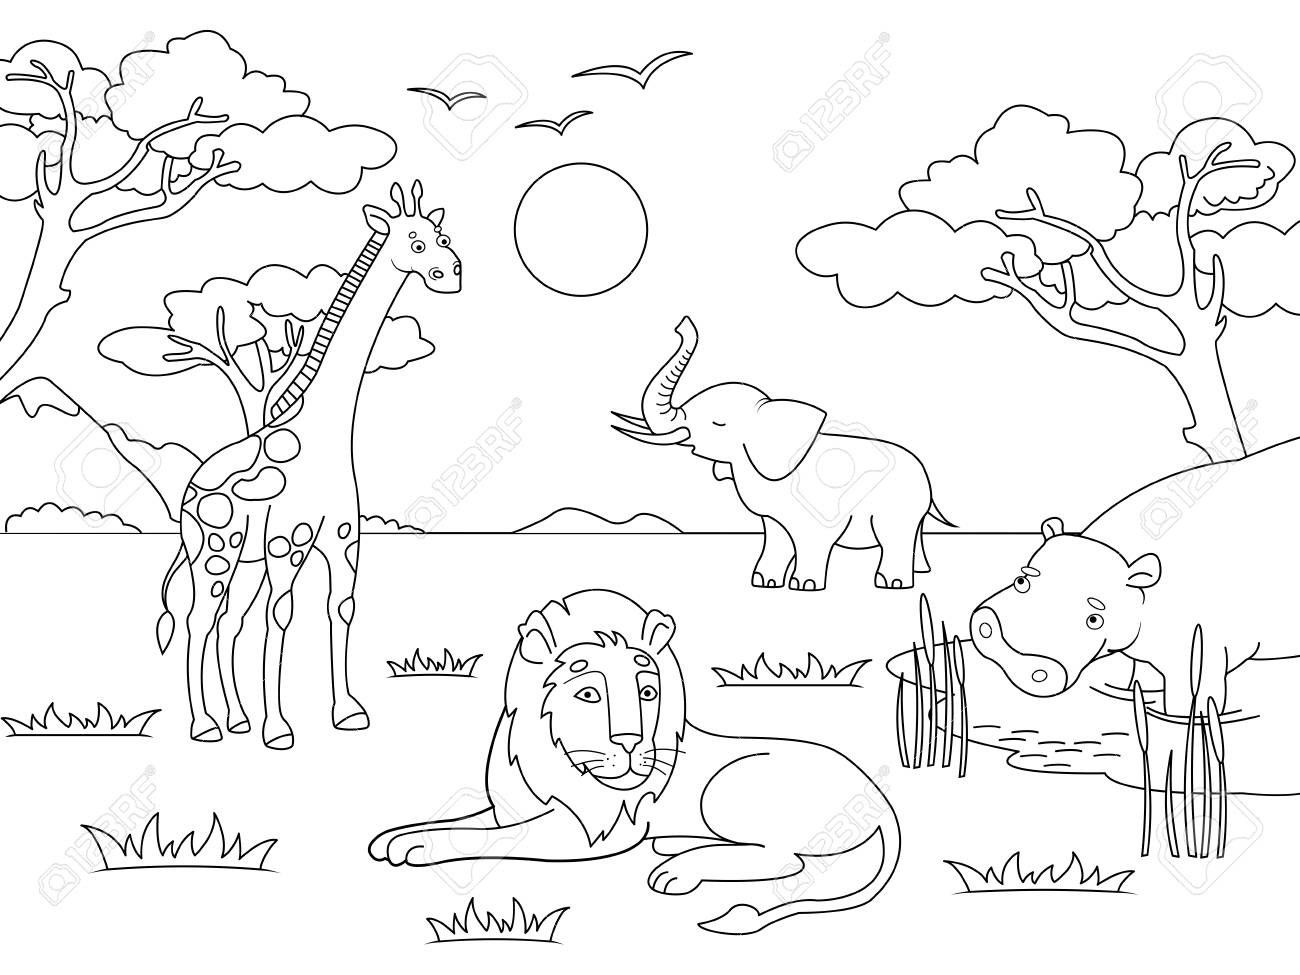 Children Drawing Animals Of Africa Mainland Mammals Zoo Vector Royalty Free Cliparts Vectors And Stock Illustration Image 125867261